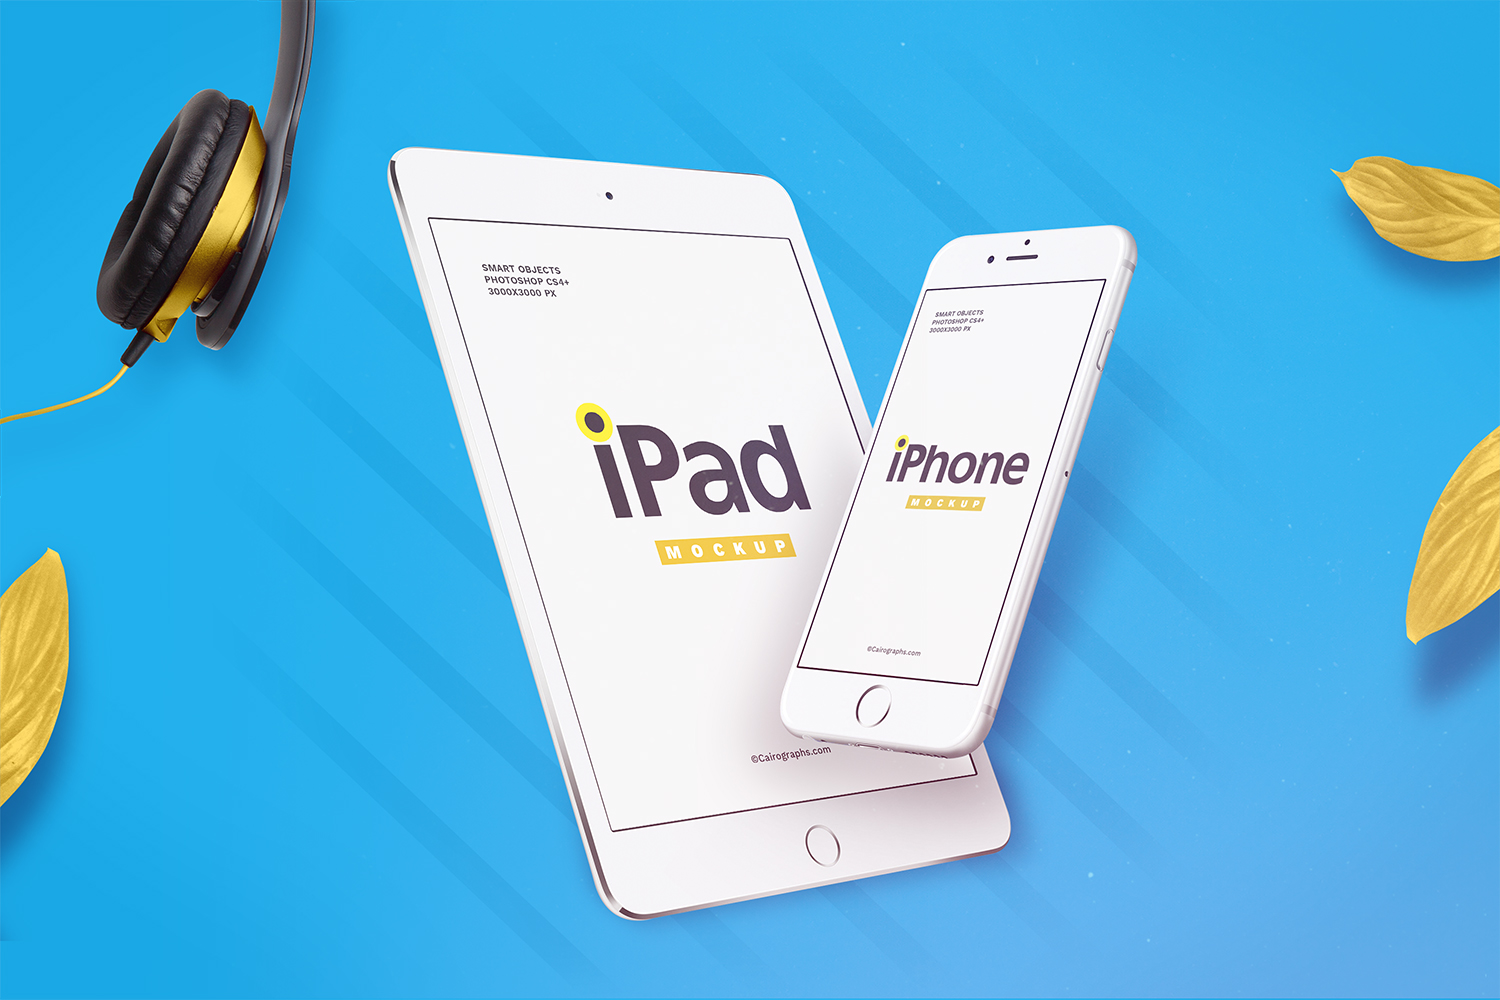 iPhone and iPad Presentation Mockups